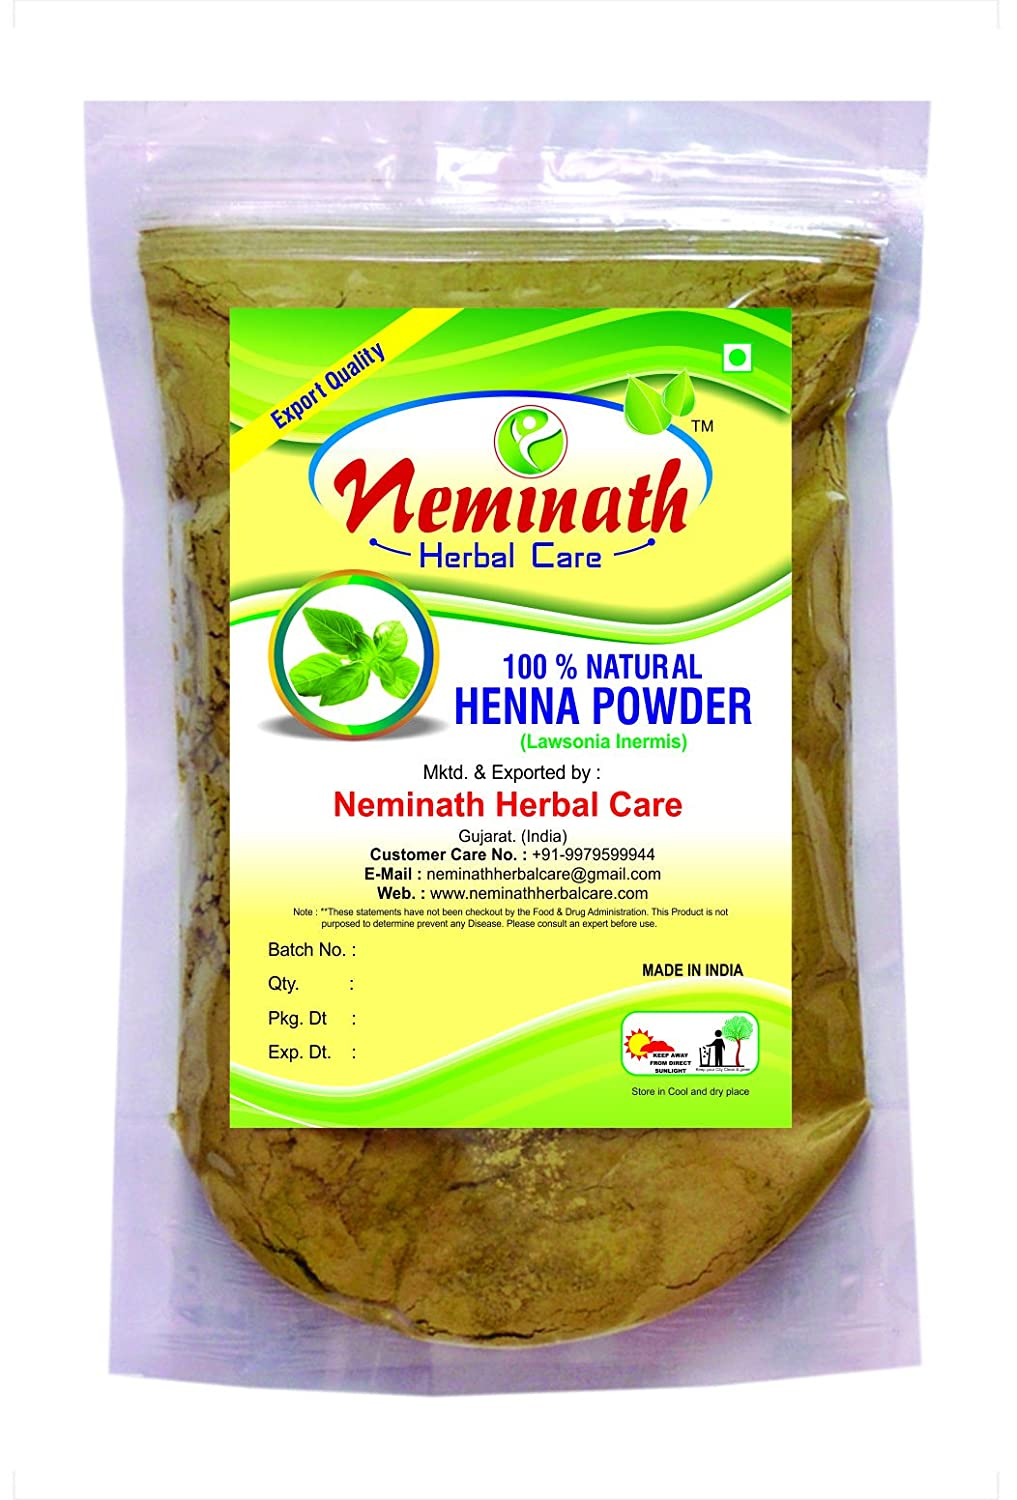 100% Natural Henna Leaves (LAWSONIA INERMIS) Powder for COVERING GRAY  HAIRS